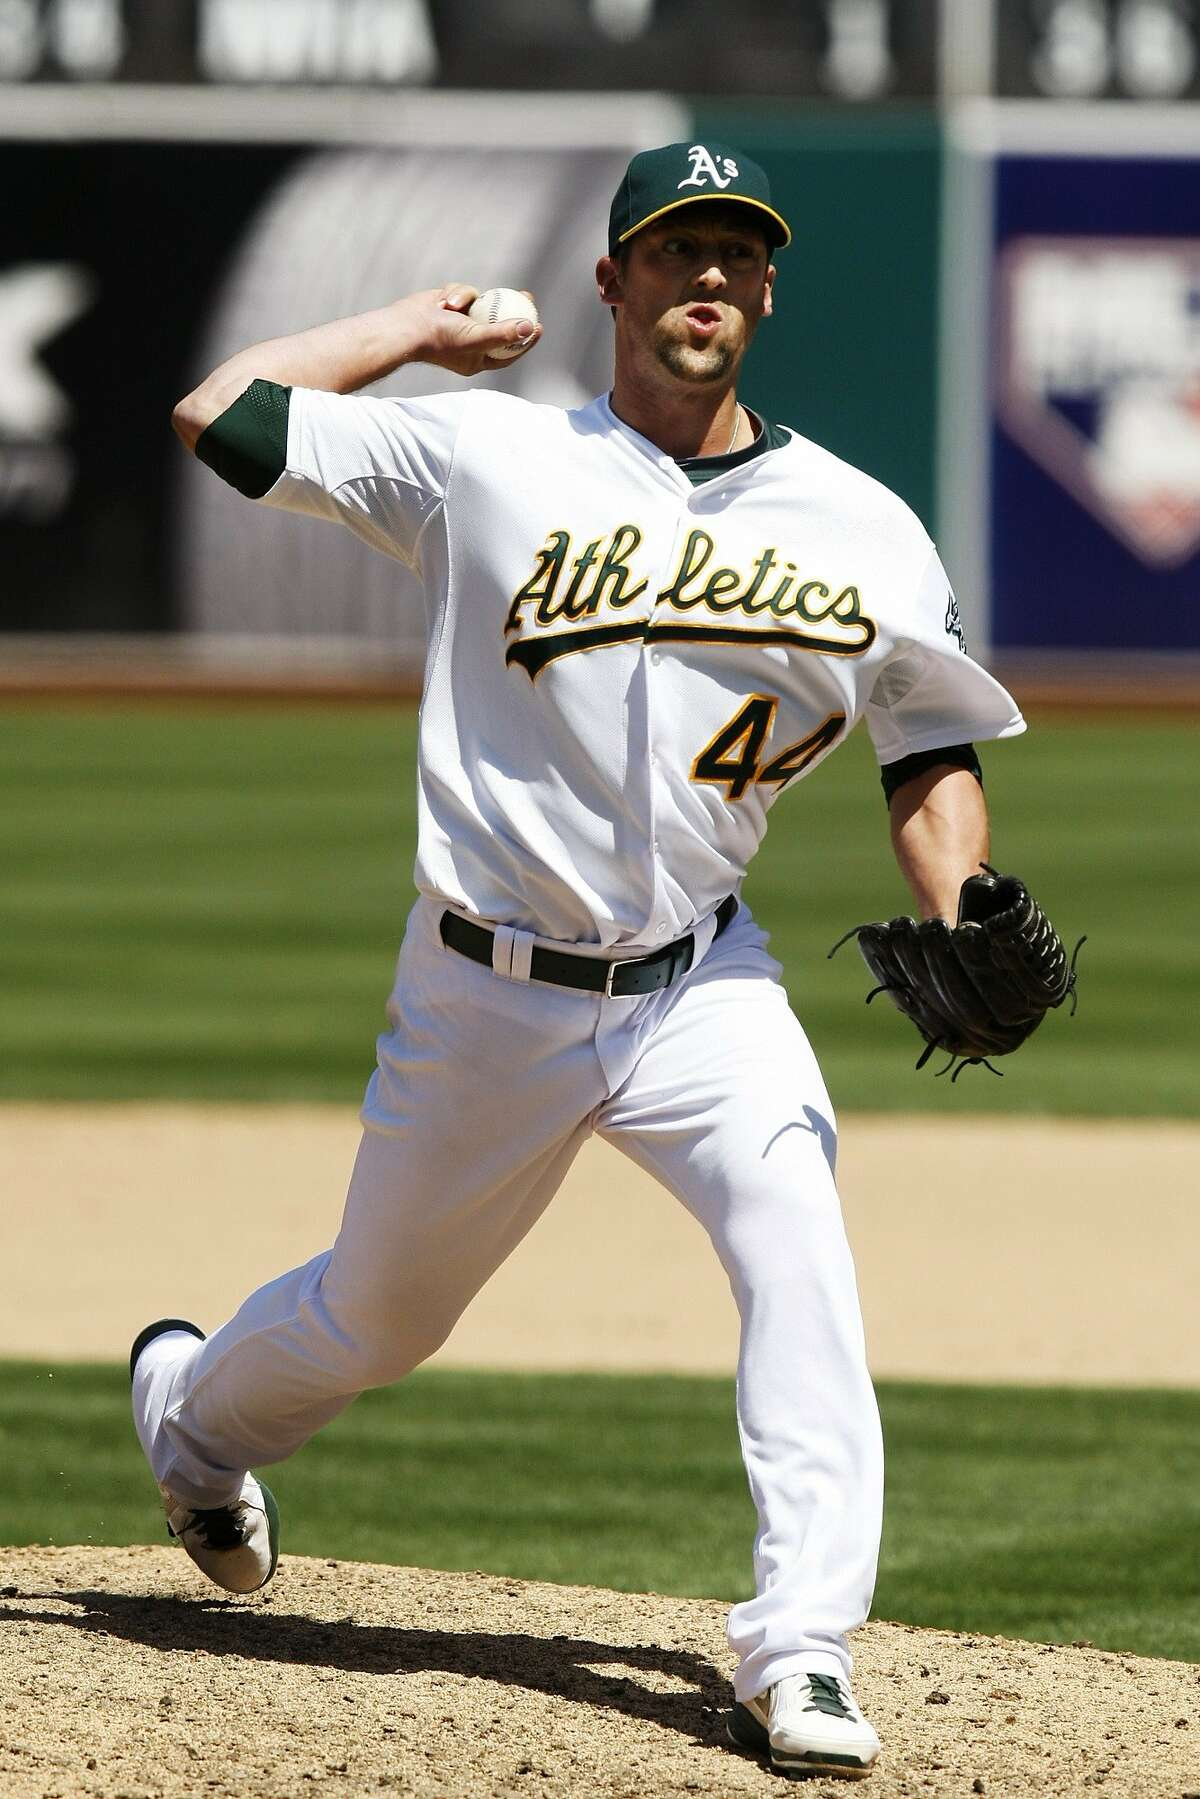 The Athletics' Luke Gregerson pitches during a game between the Oakland A's and the Seattle Mariners at O.co Coliseum on May 7, 2014 in Oakland, Calif.